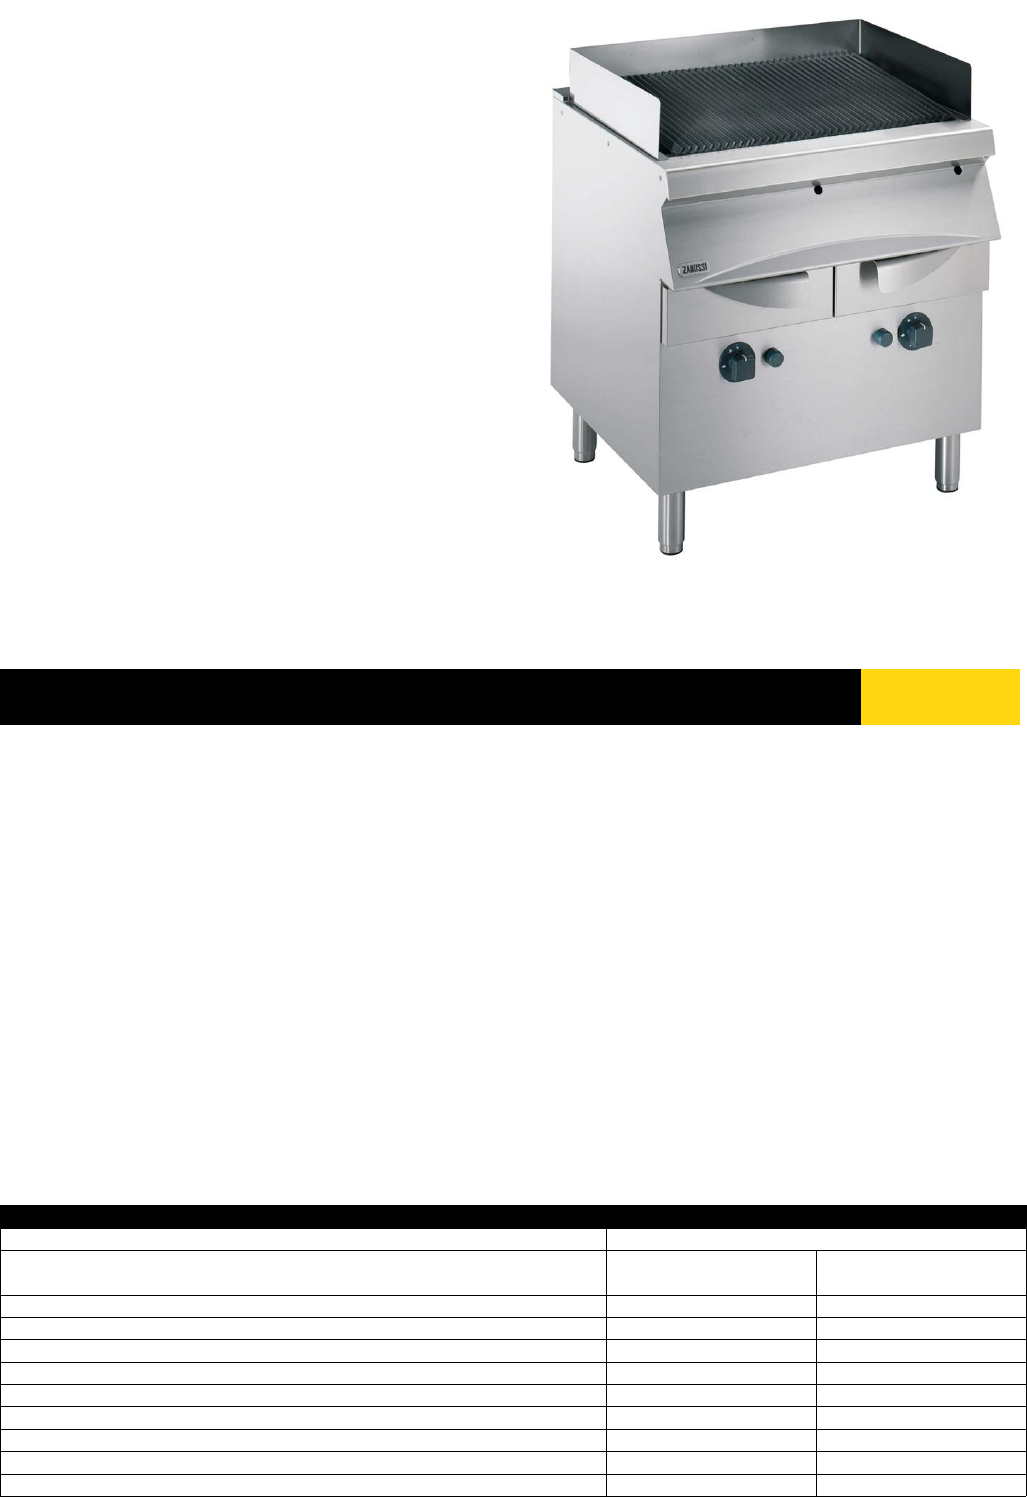 electrolux charcoal grill kgg400 user guide manualsonline com rh outdoorcooking manualsonline com Electrolux Gas Grills Outdoor Electrolux Icon 57 Grill